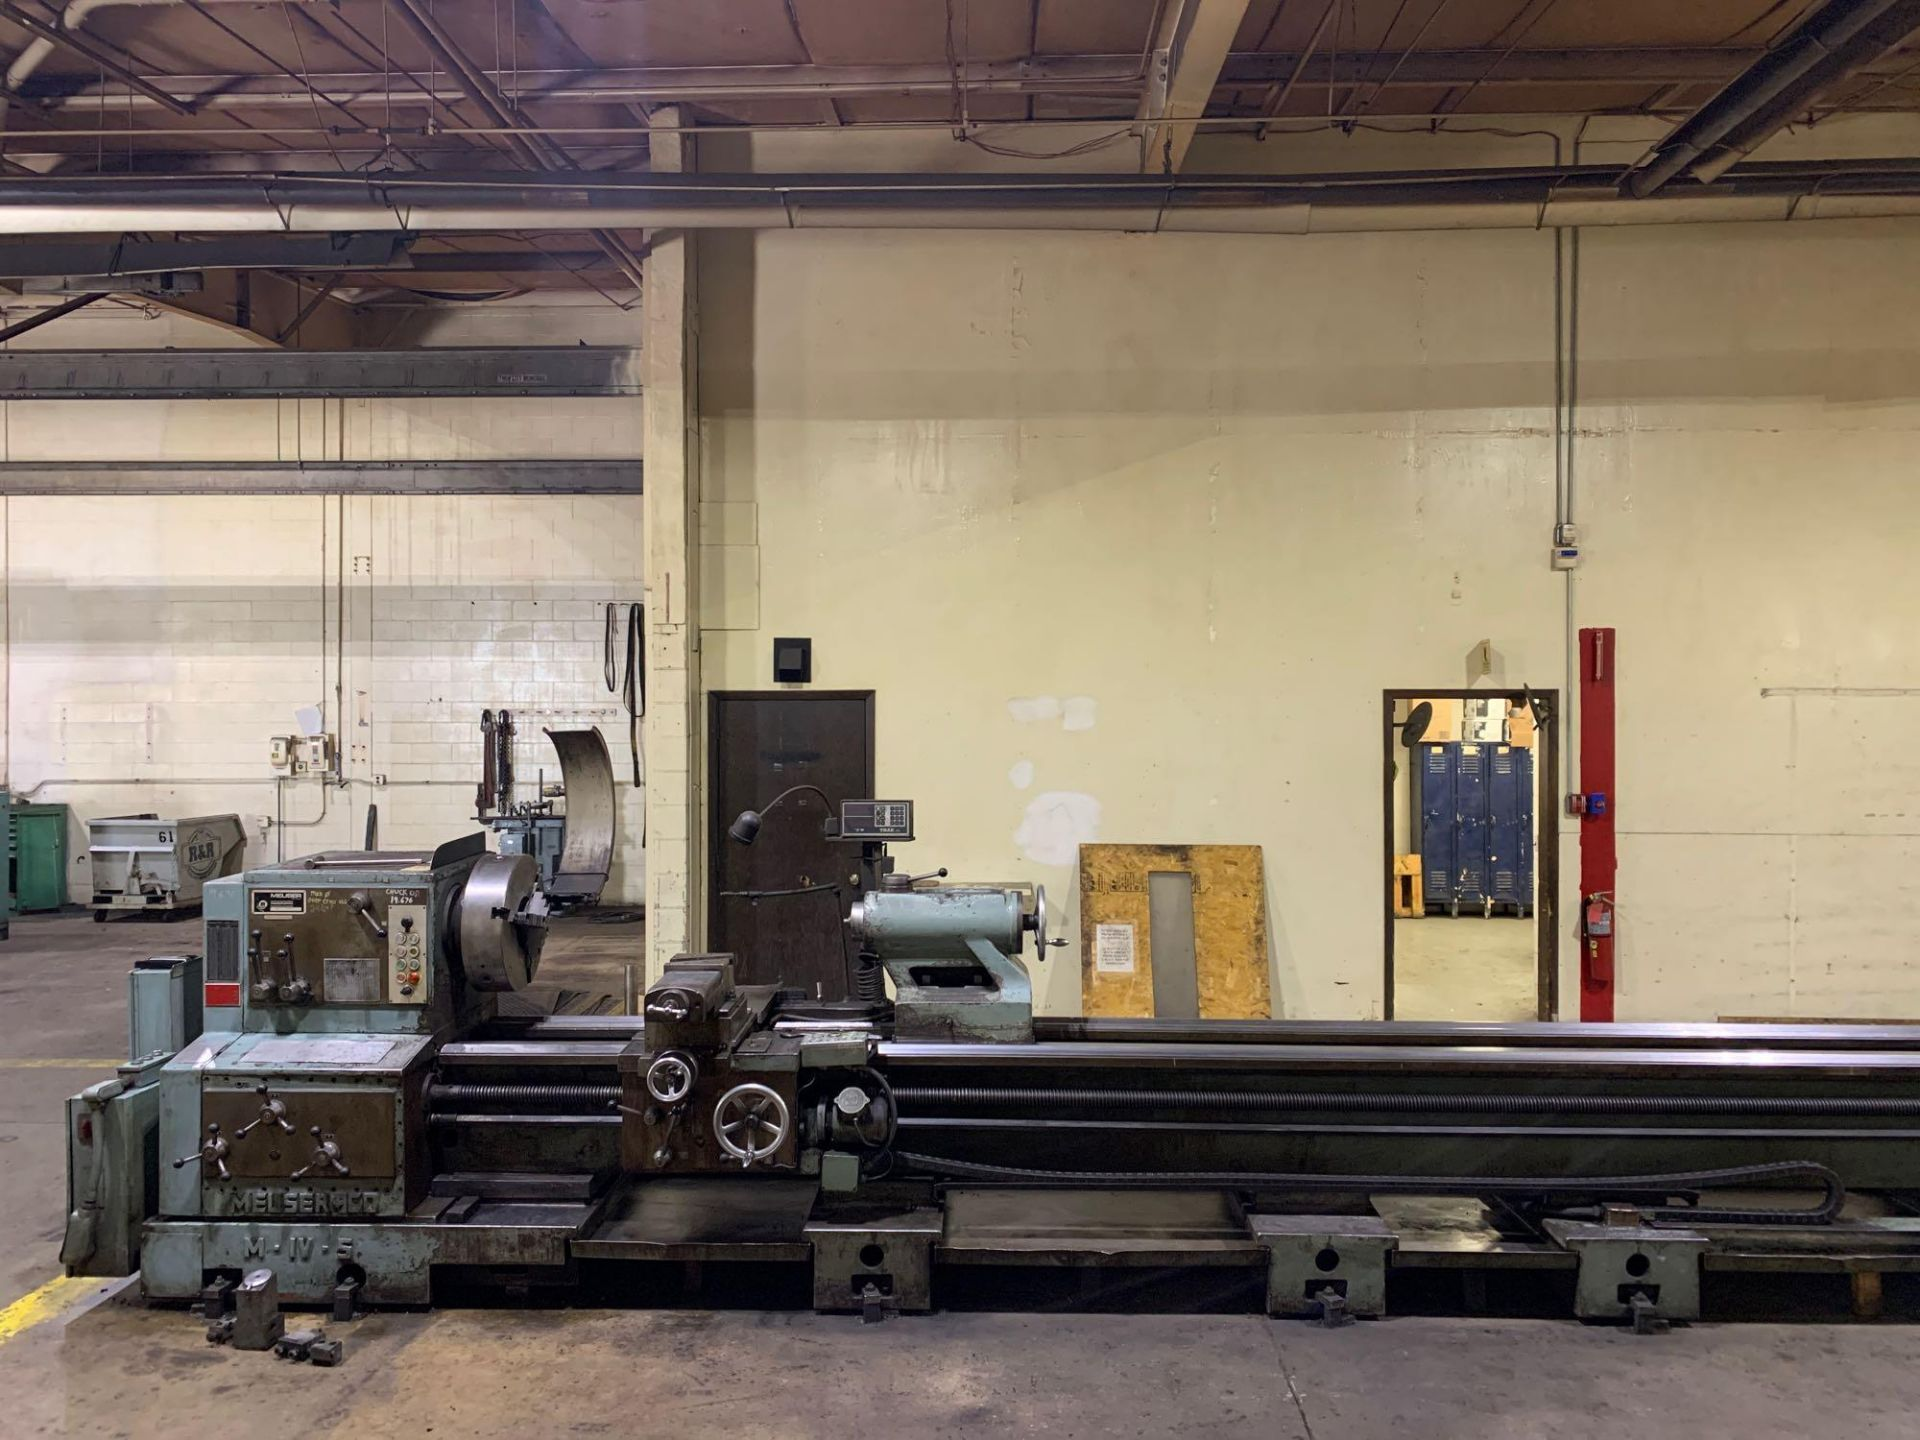 """Meuser Heavy Duty Gap Bed Engine Lathe Model: M IV S Serial Number: 45377 Rated Capacity:32""""/45"""" x - Image 3 of 35"""